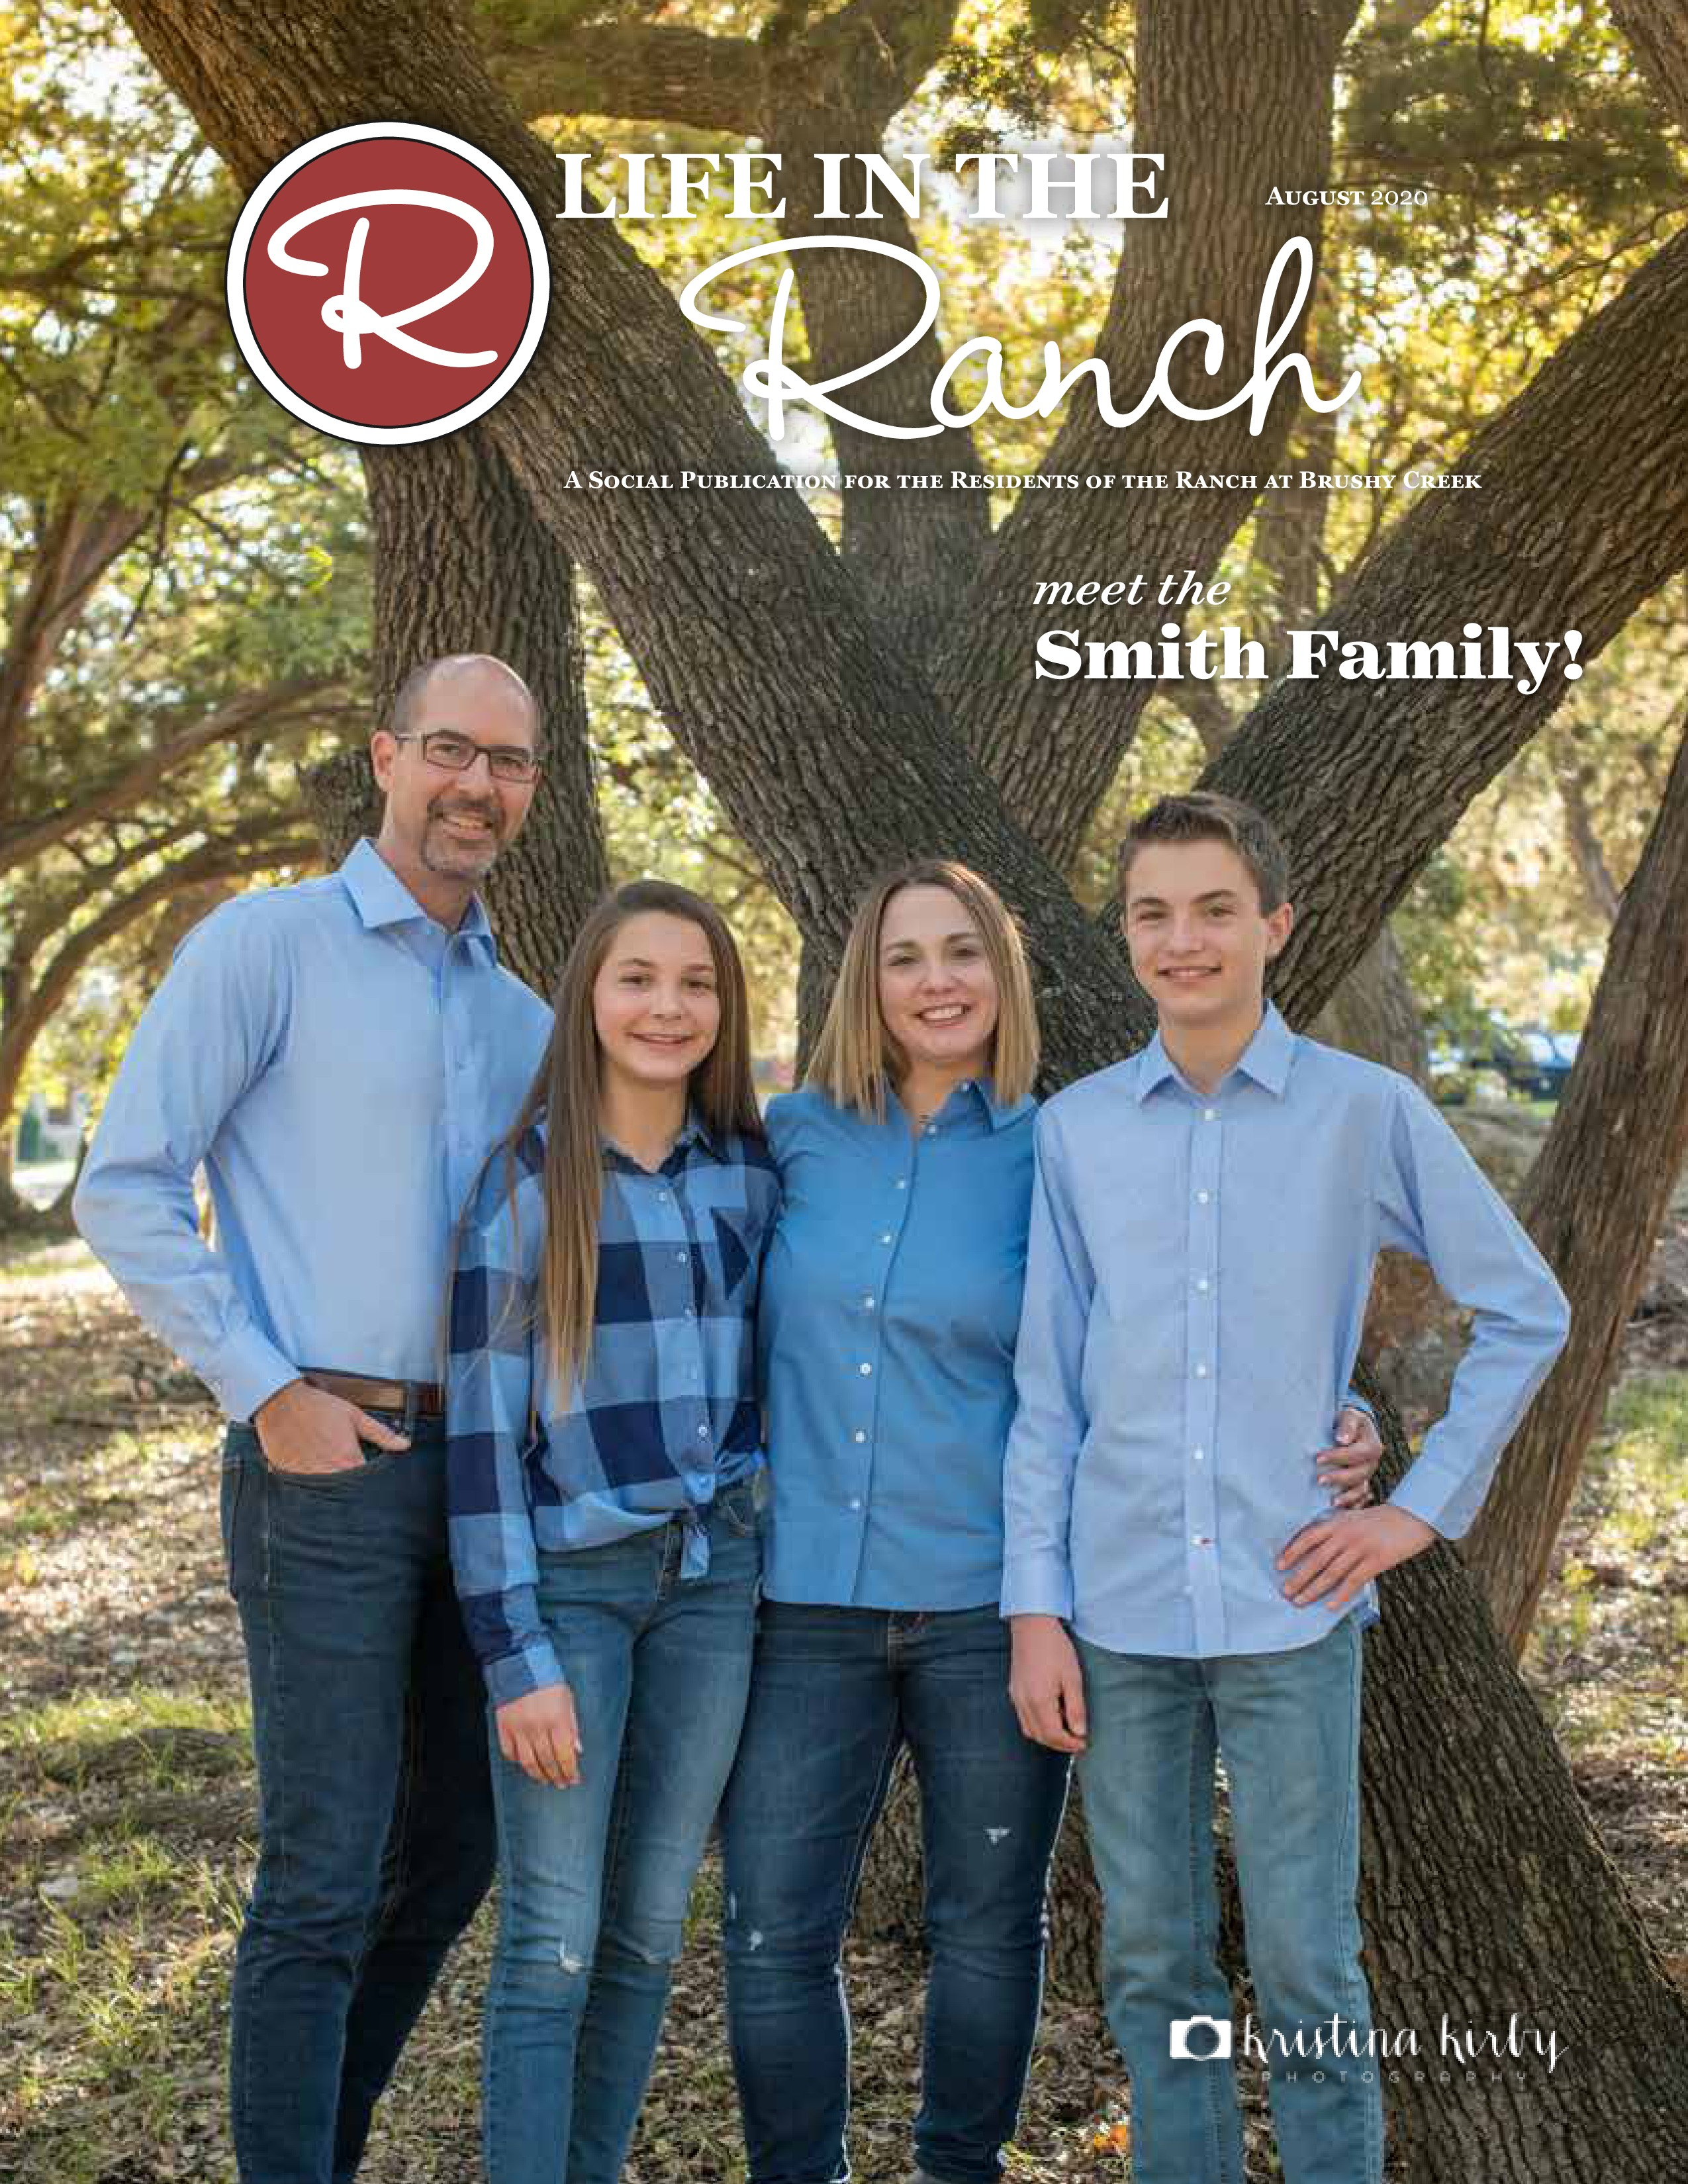 Aug 2020 life in the ranch page 1